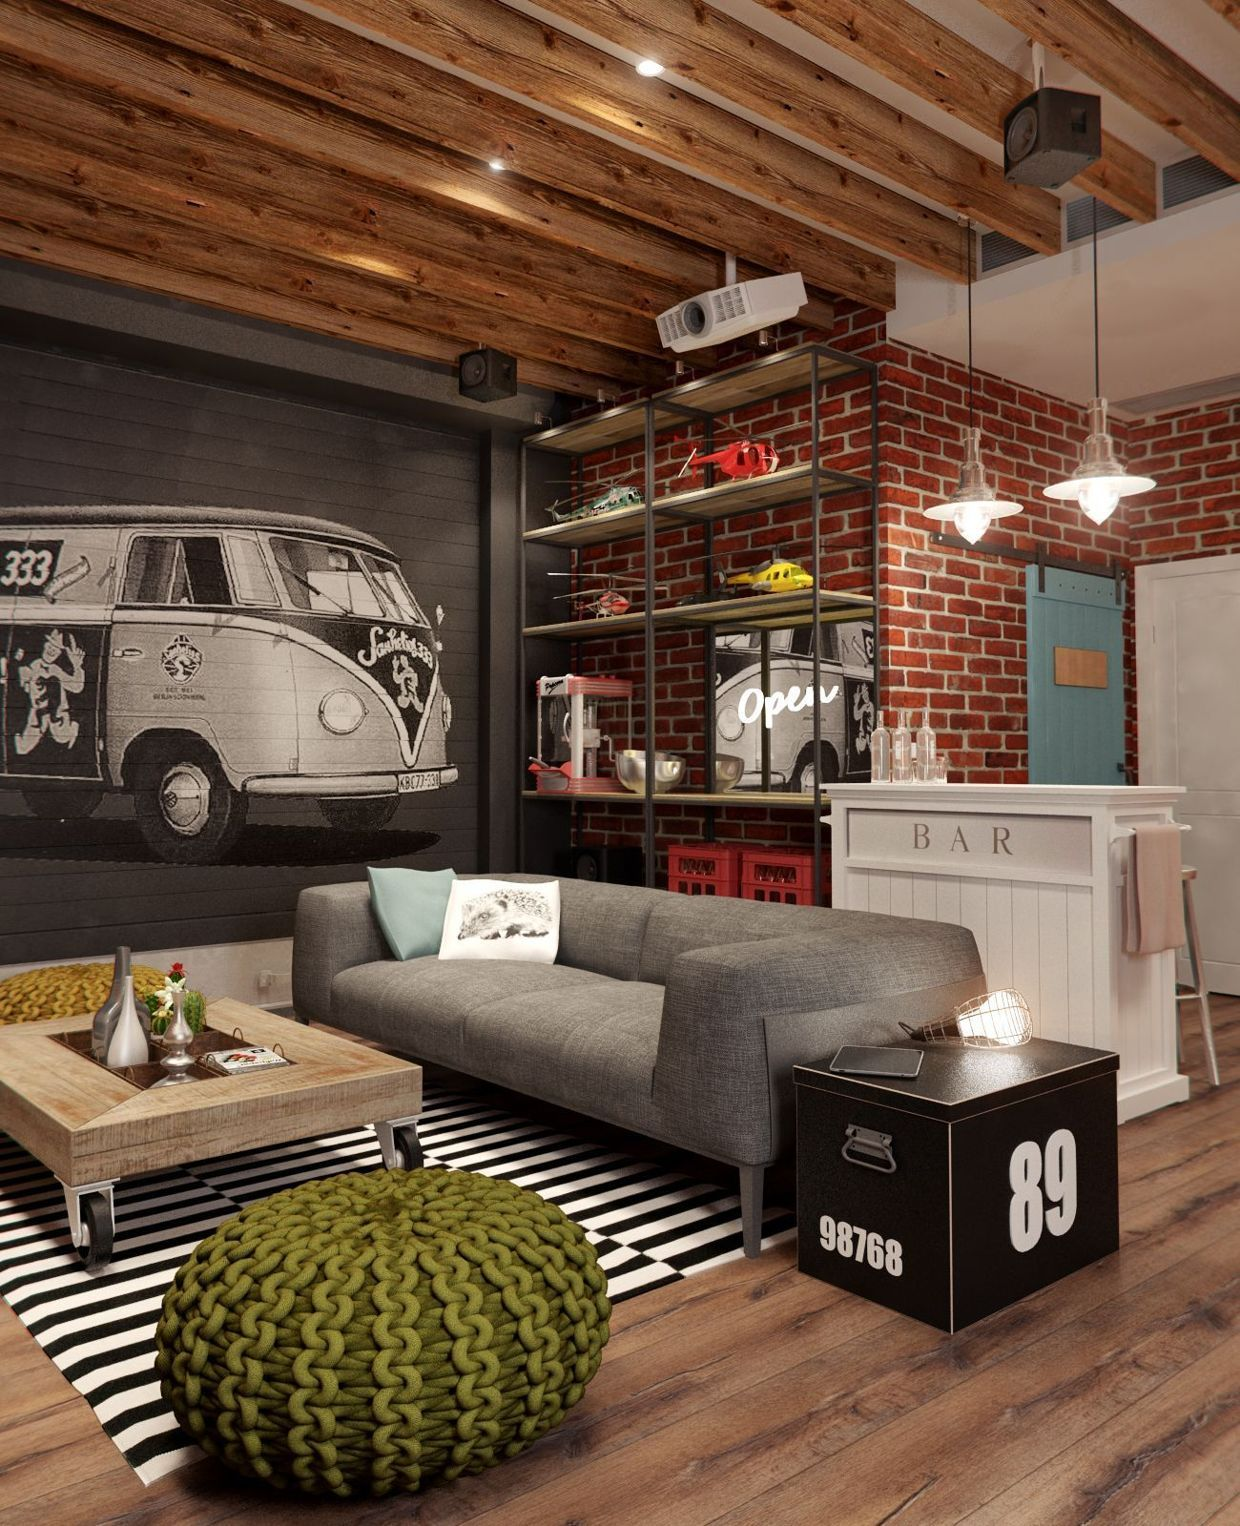 Living Room 5 Design Ideas That Will Help You Make The Most Out Cool IdeasIndustrial DecoratingIndustrial